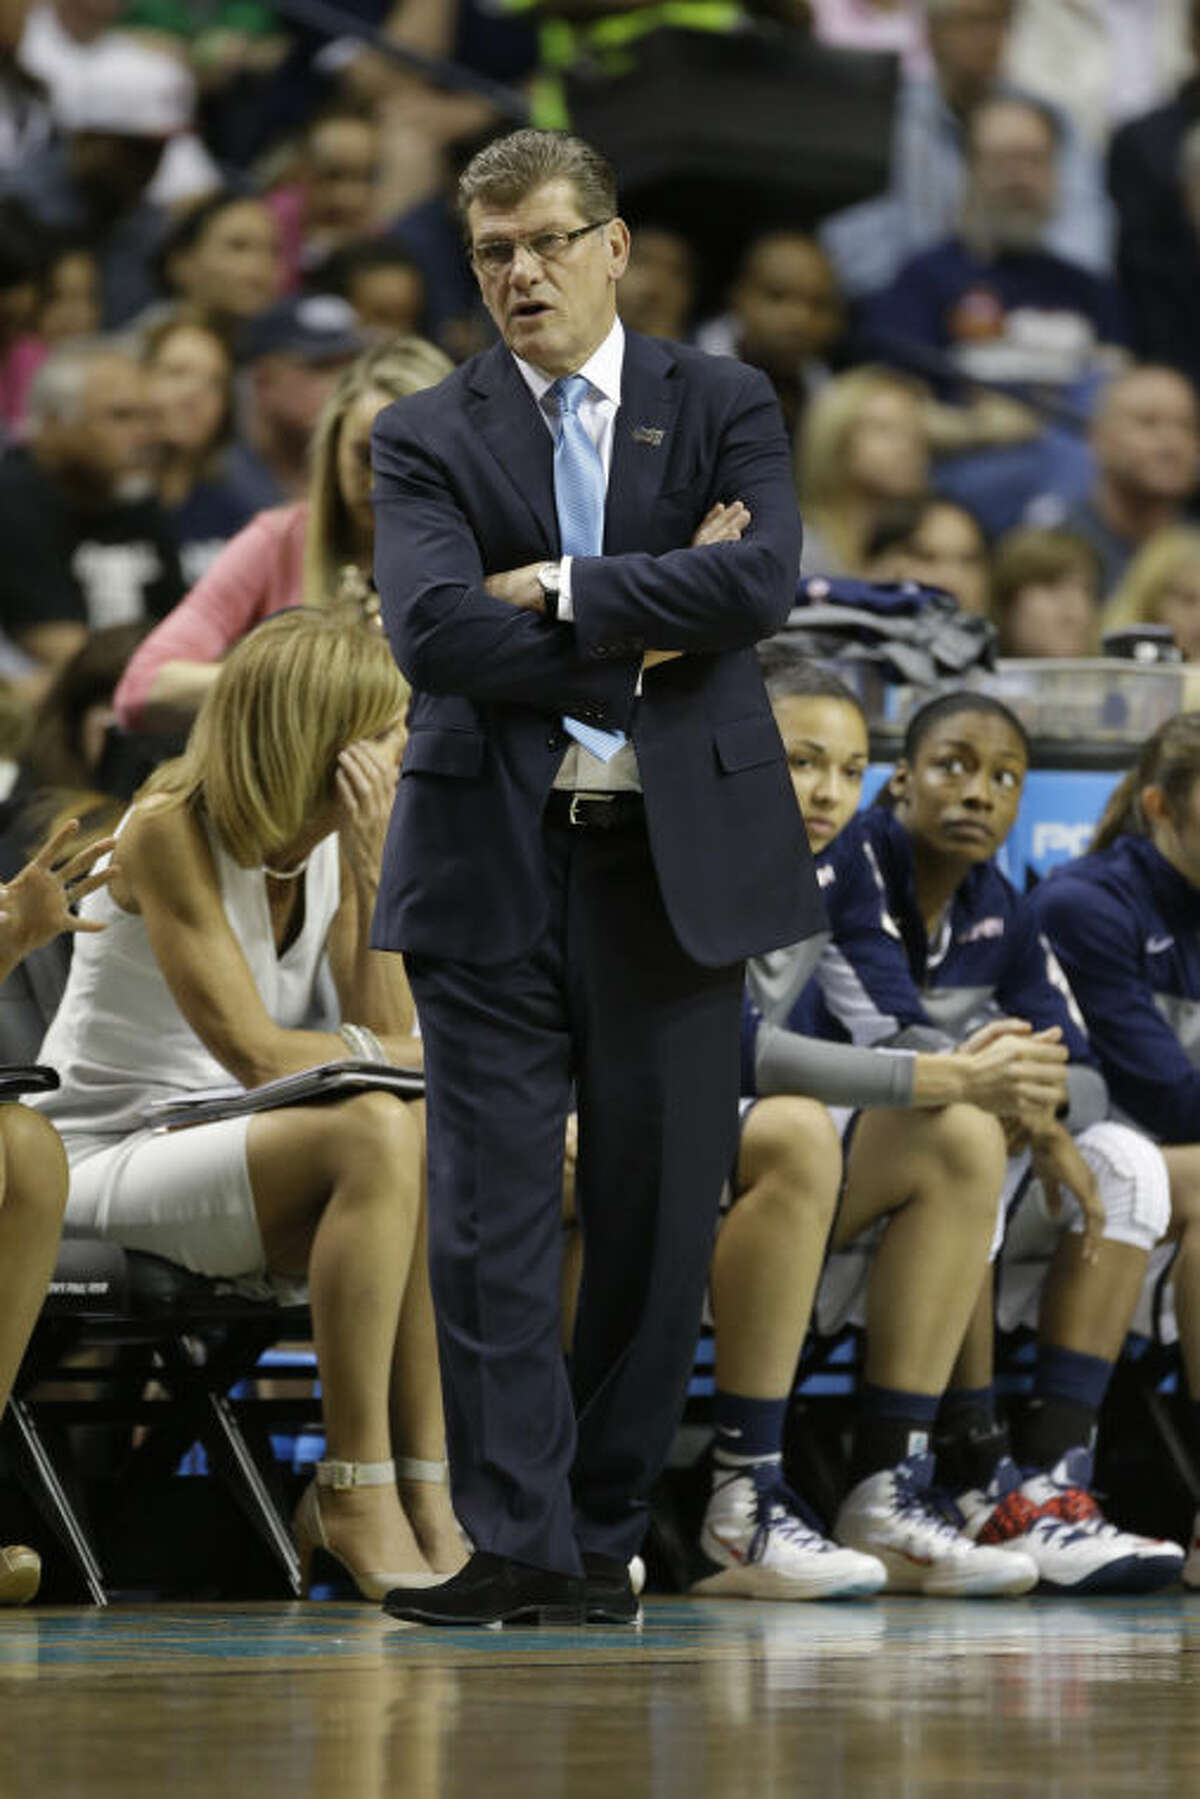 Connecticut head coach Geno Auriemma walks the court against Stanford during the first half of the semifinal game in the Final Four of the NCAA women's college basketball tournament, Sunday, April 6, 2014, in Nashville, Tenn. (AP Photo/Mark Humphrey)